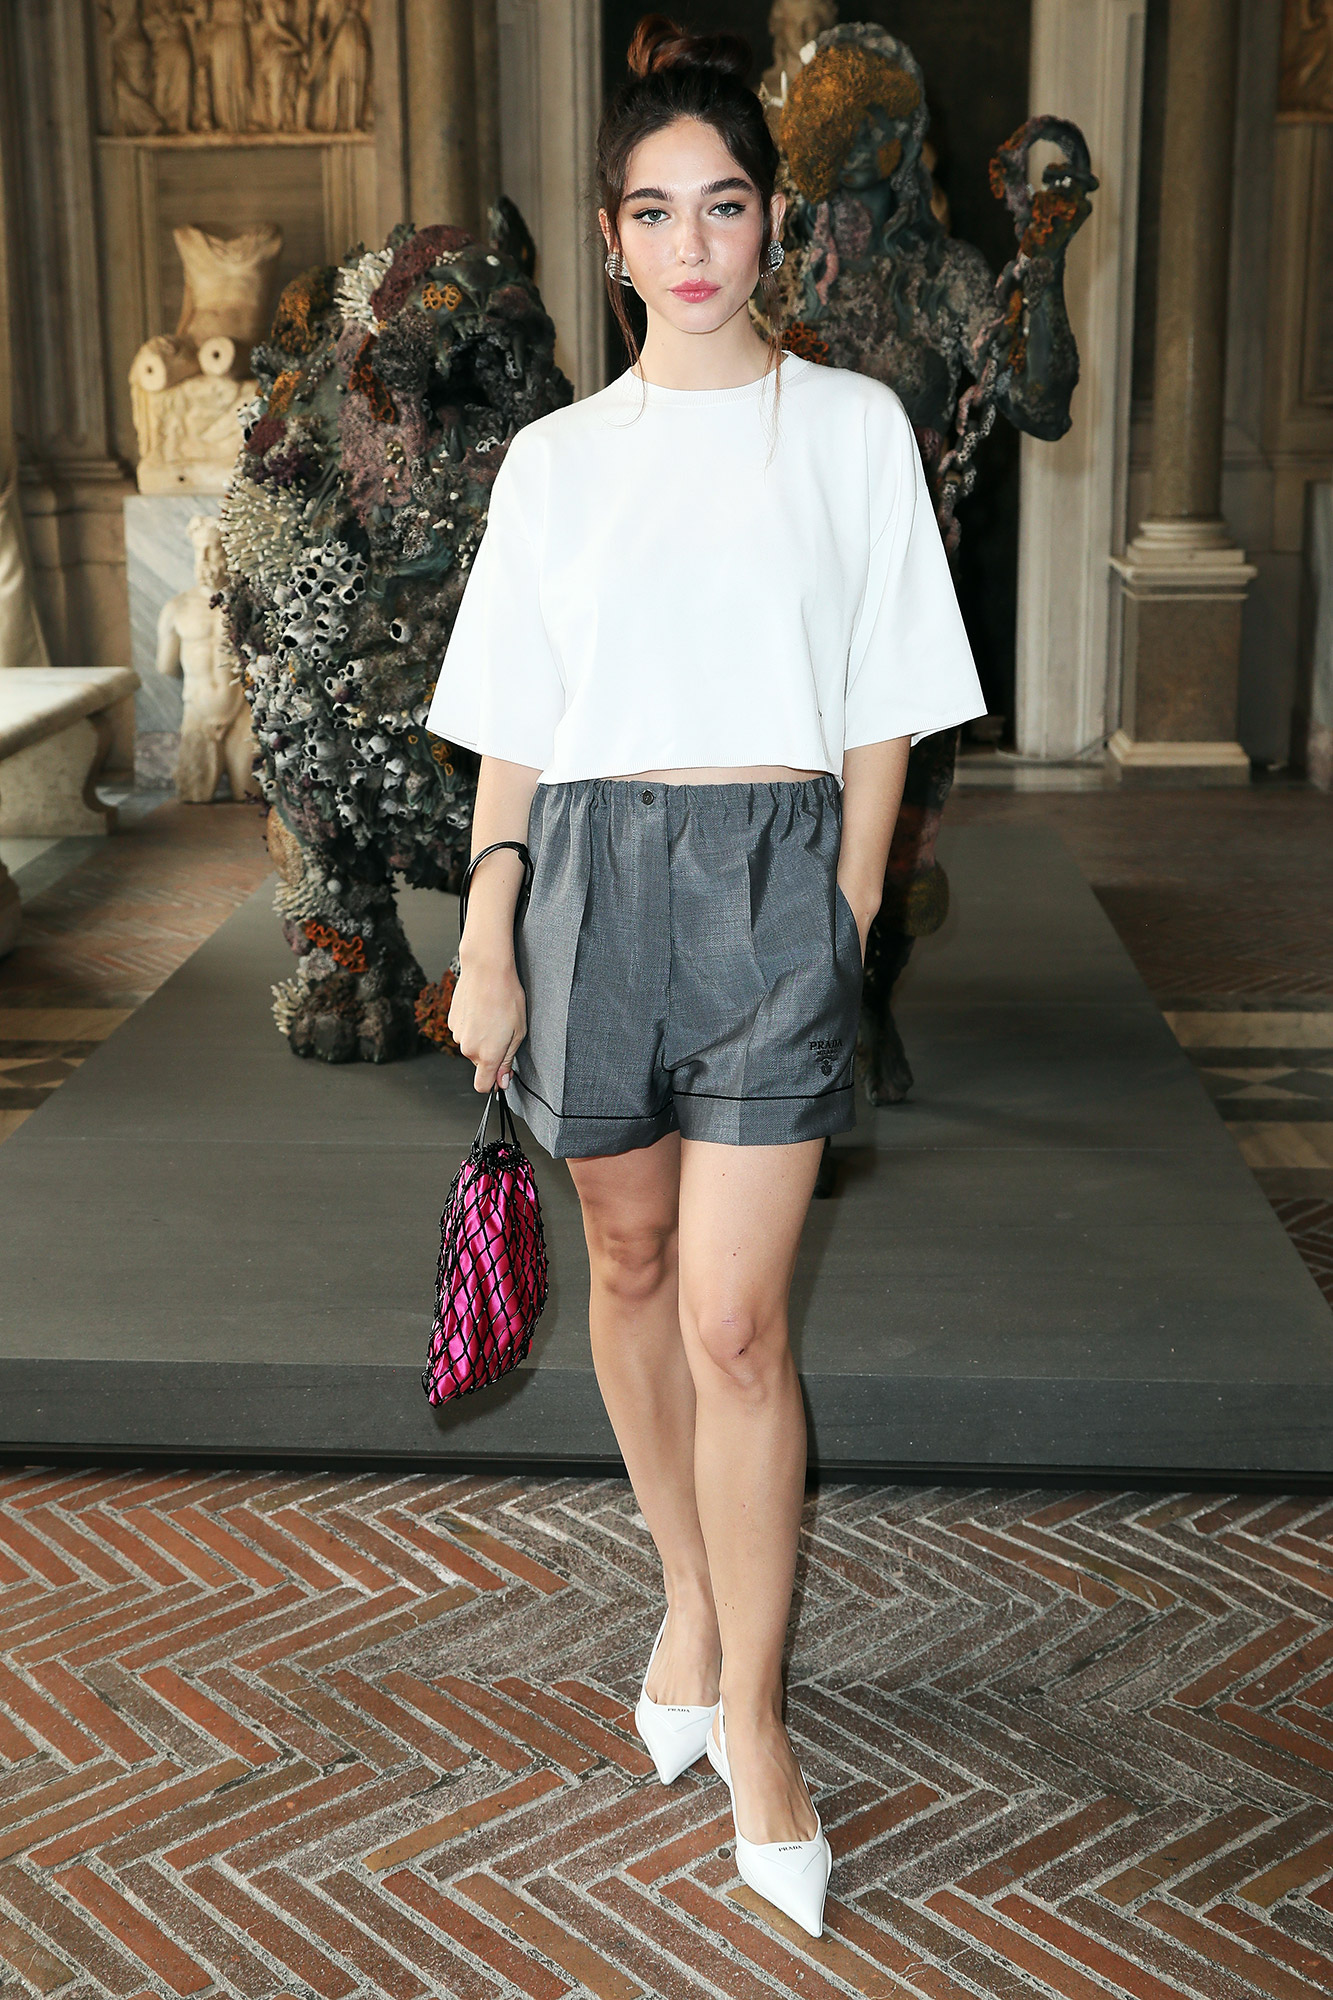 Matilda De Angelis attends Damien Hirst Archaeology now exhibition, sponsored by Prada at Galleria Borghese on June 07, 2021 in Rome, Italy